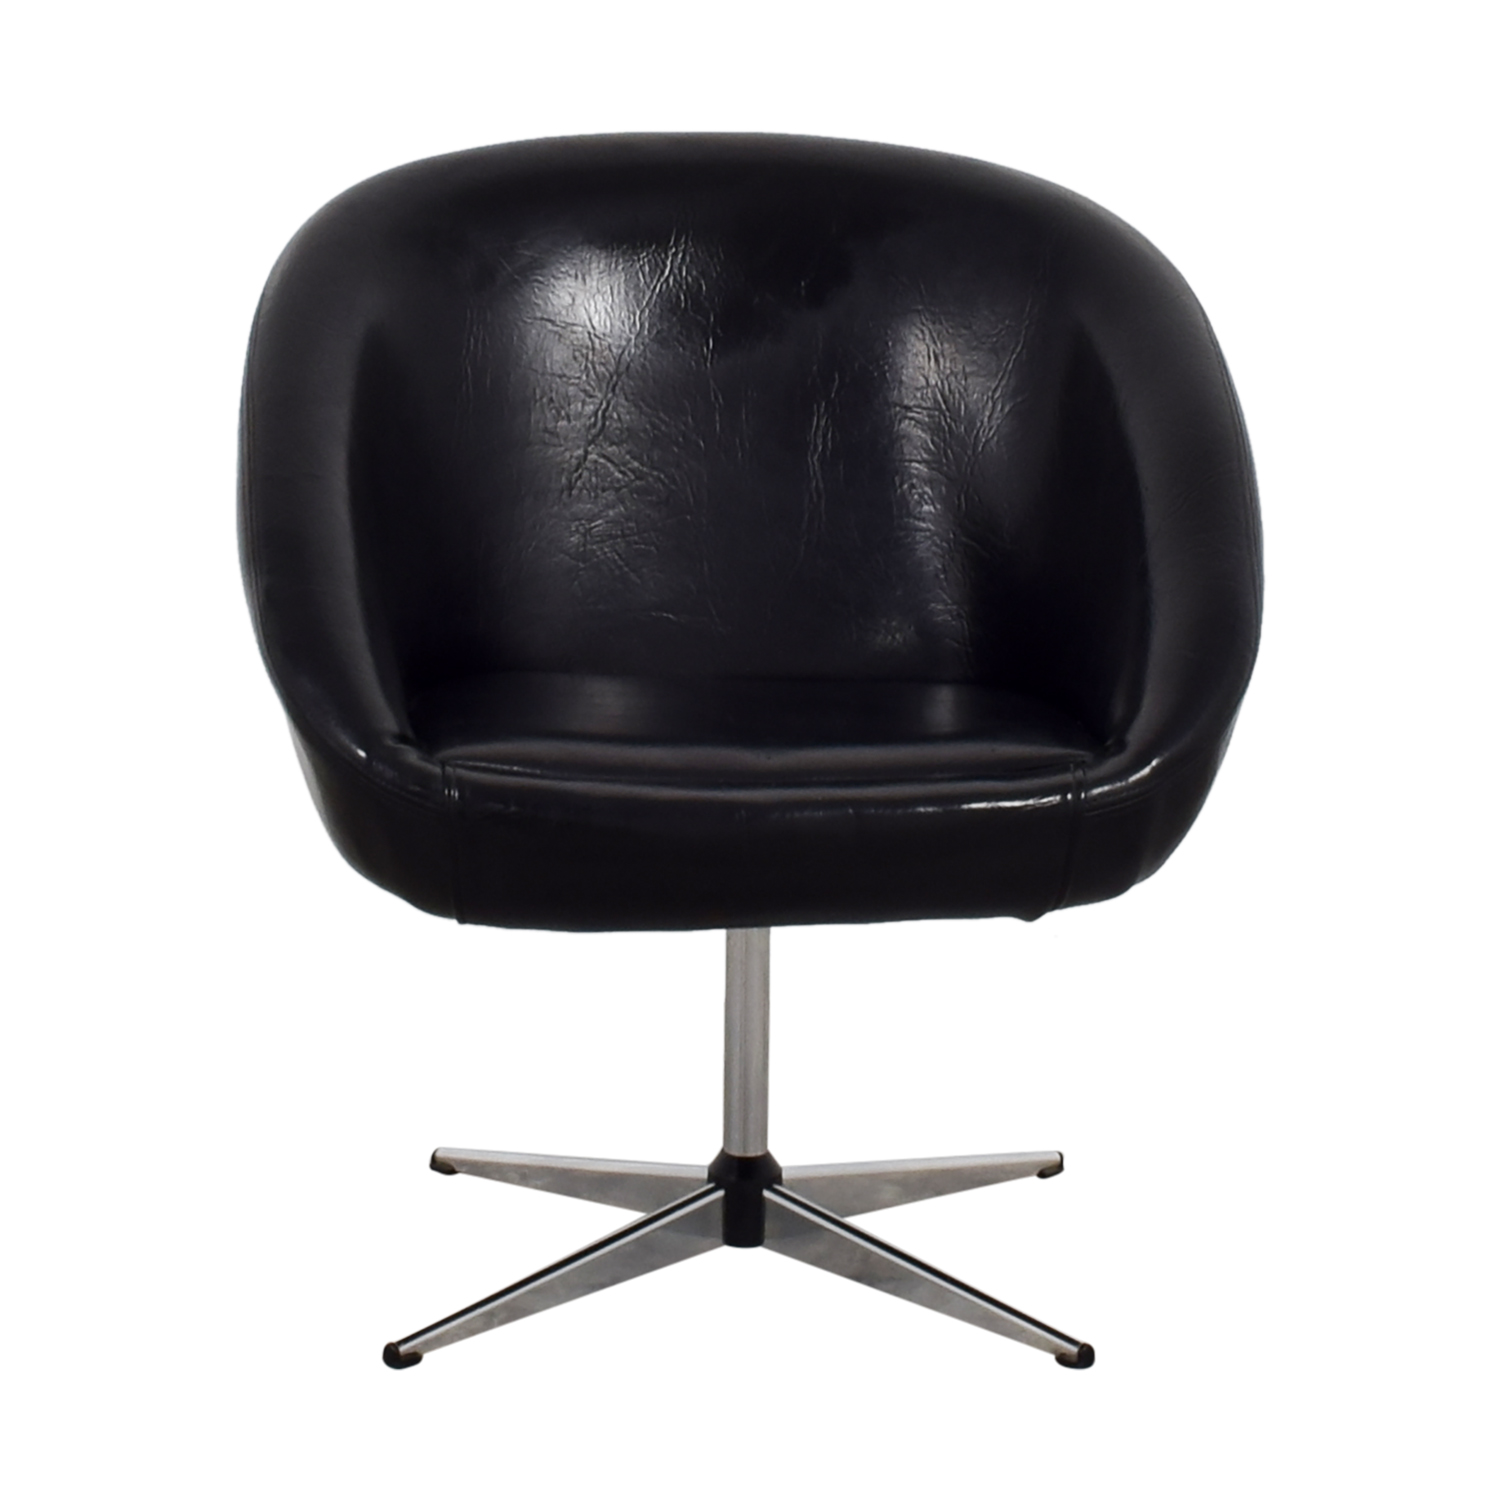 By Design By Design Modern Black Revolving Chair for sale